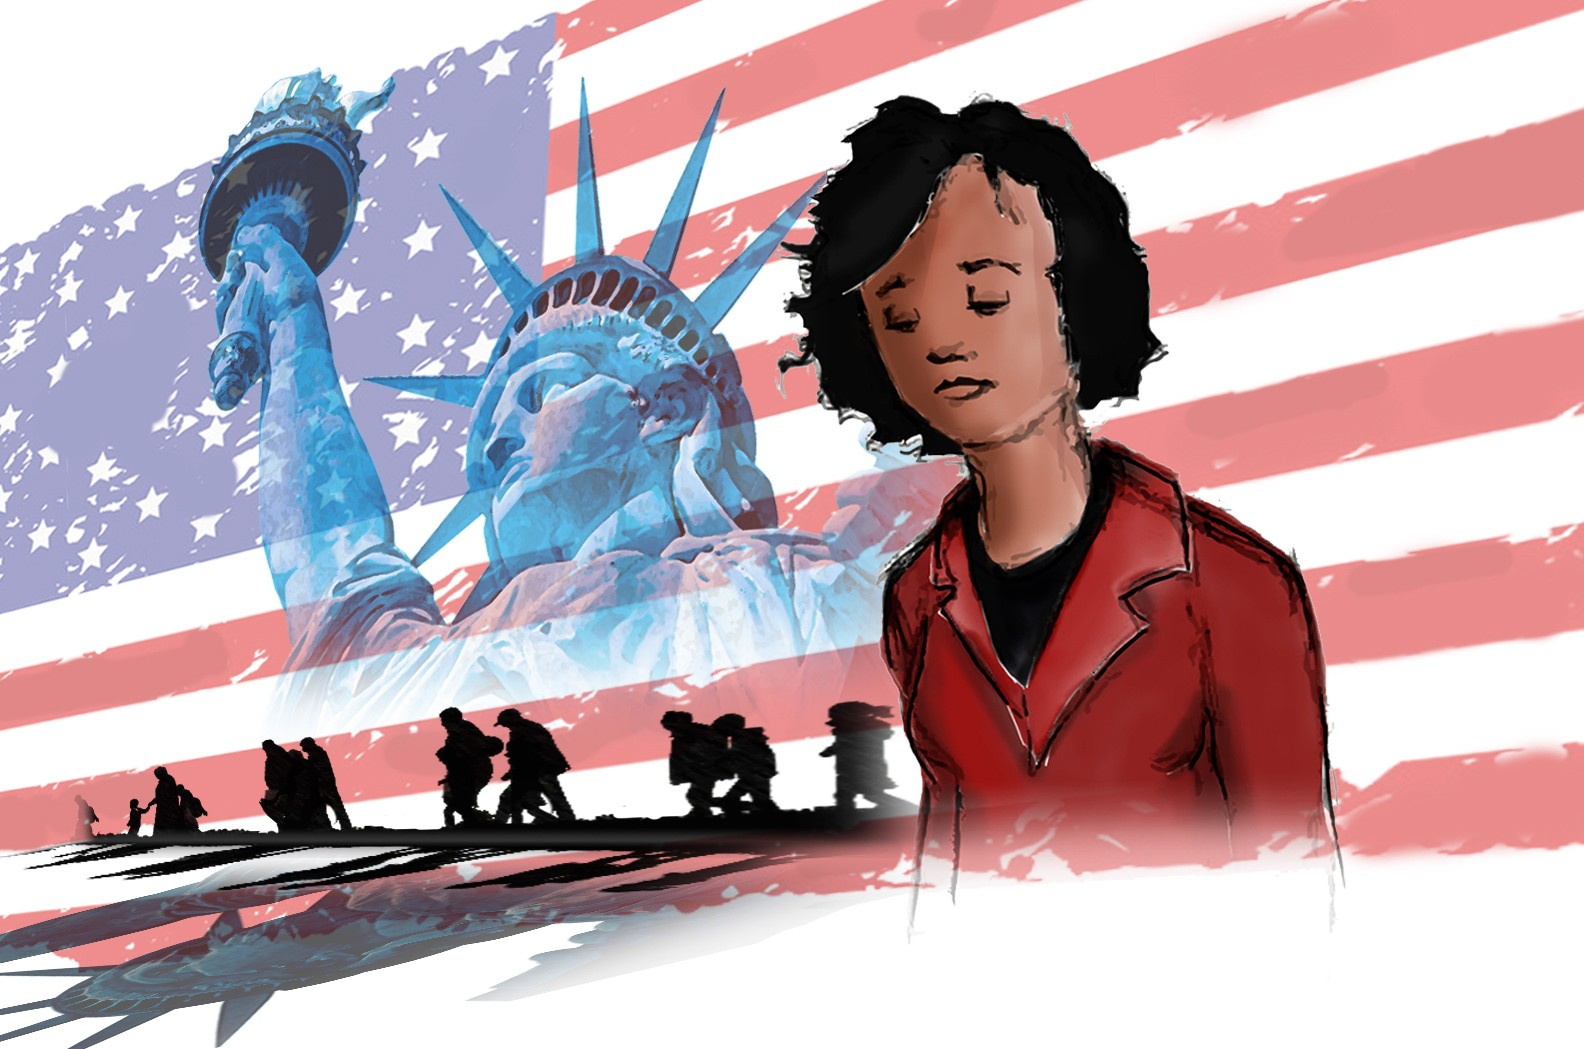 Drawing of a woman with medium-brown skin tone in front of an American flag, the Statue of Liberty, and the silhouettes of refugees